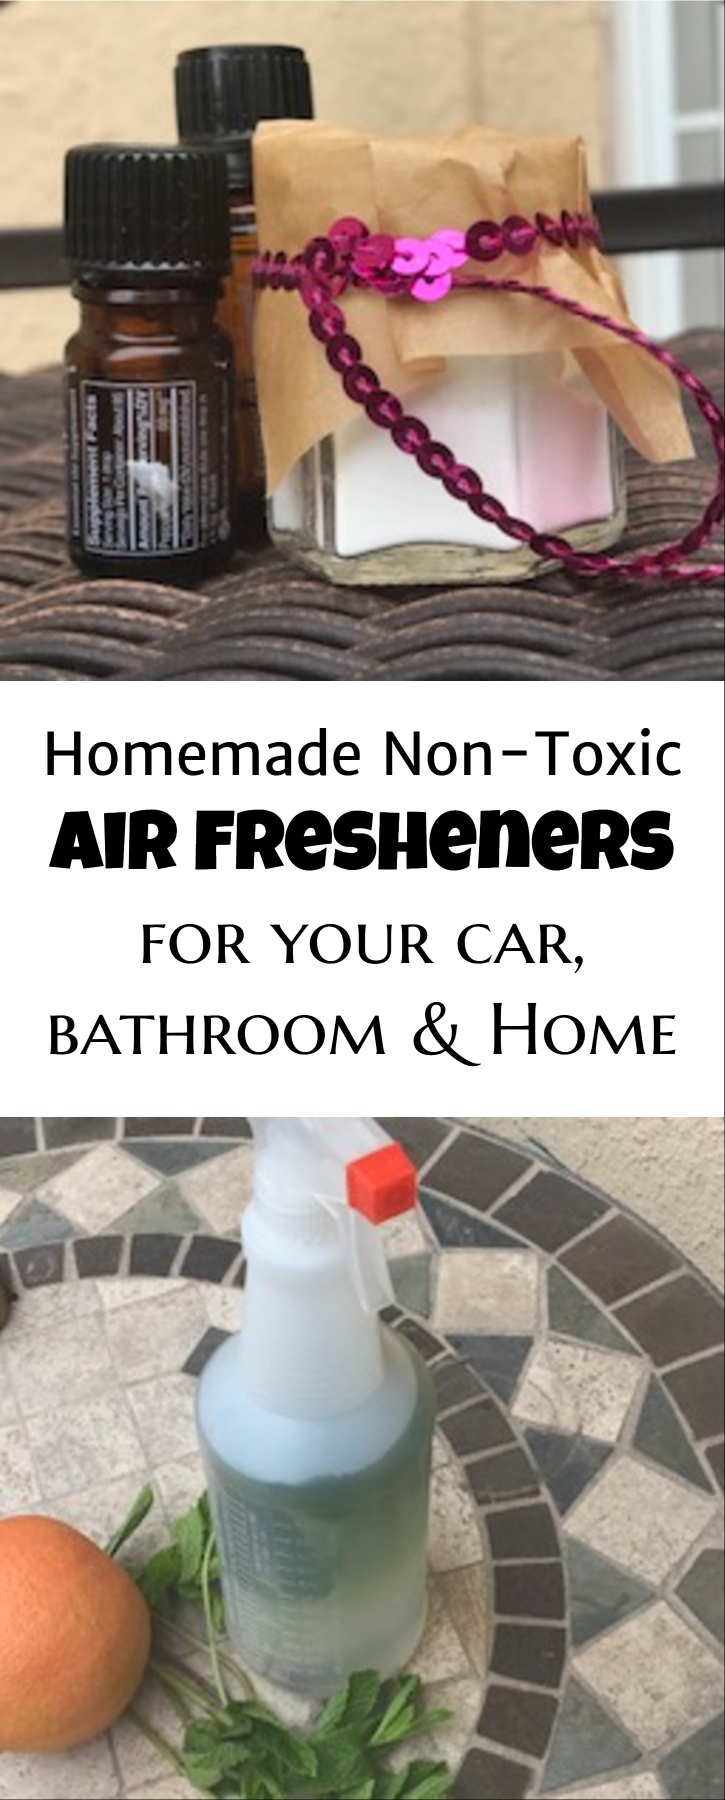 non-toxic air freshener/ homemade air freshener/ make car smell clean/ make bathroom smell clean/ toxic chemicals in air fresheners/ healthy air fresheners/ essential oils/ orange essential oil/ peppermint essential oil/ crafts for your home)